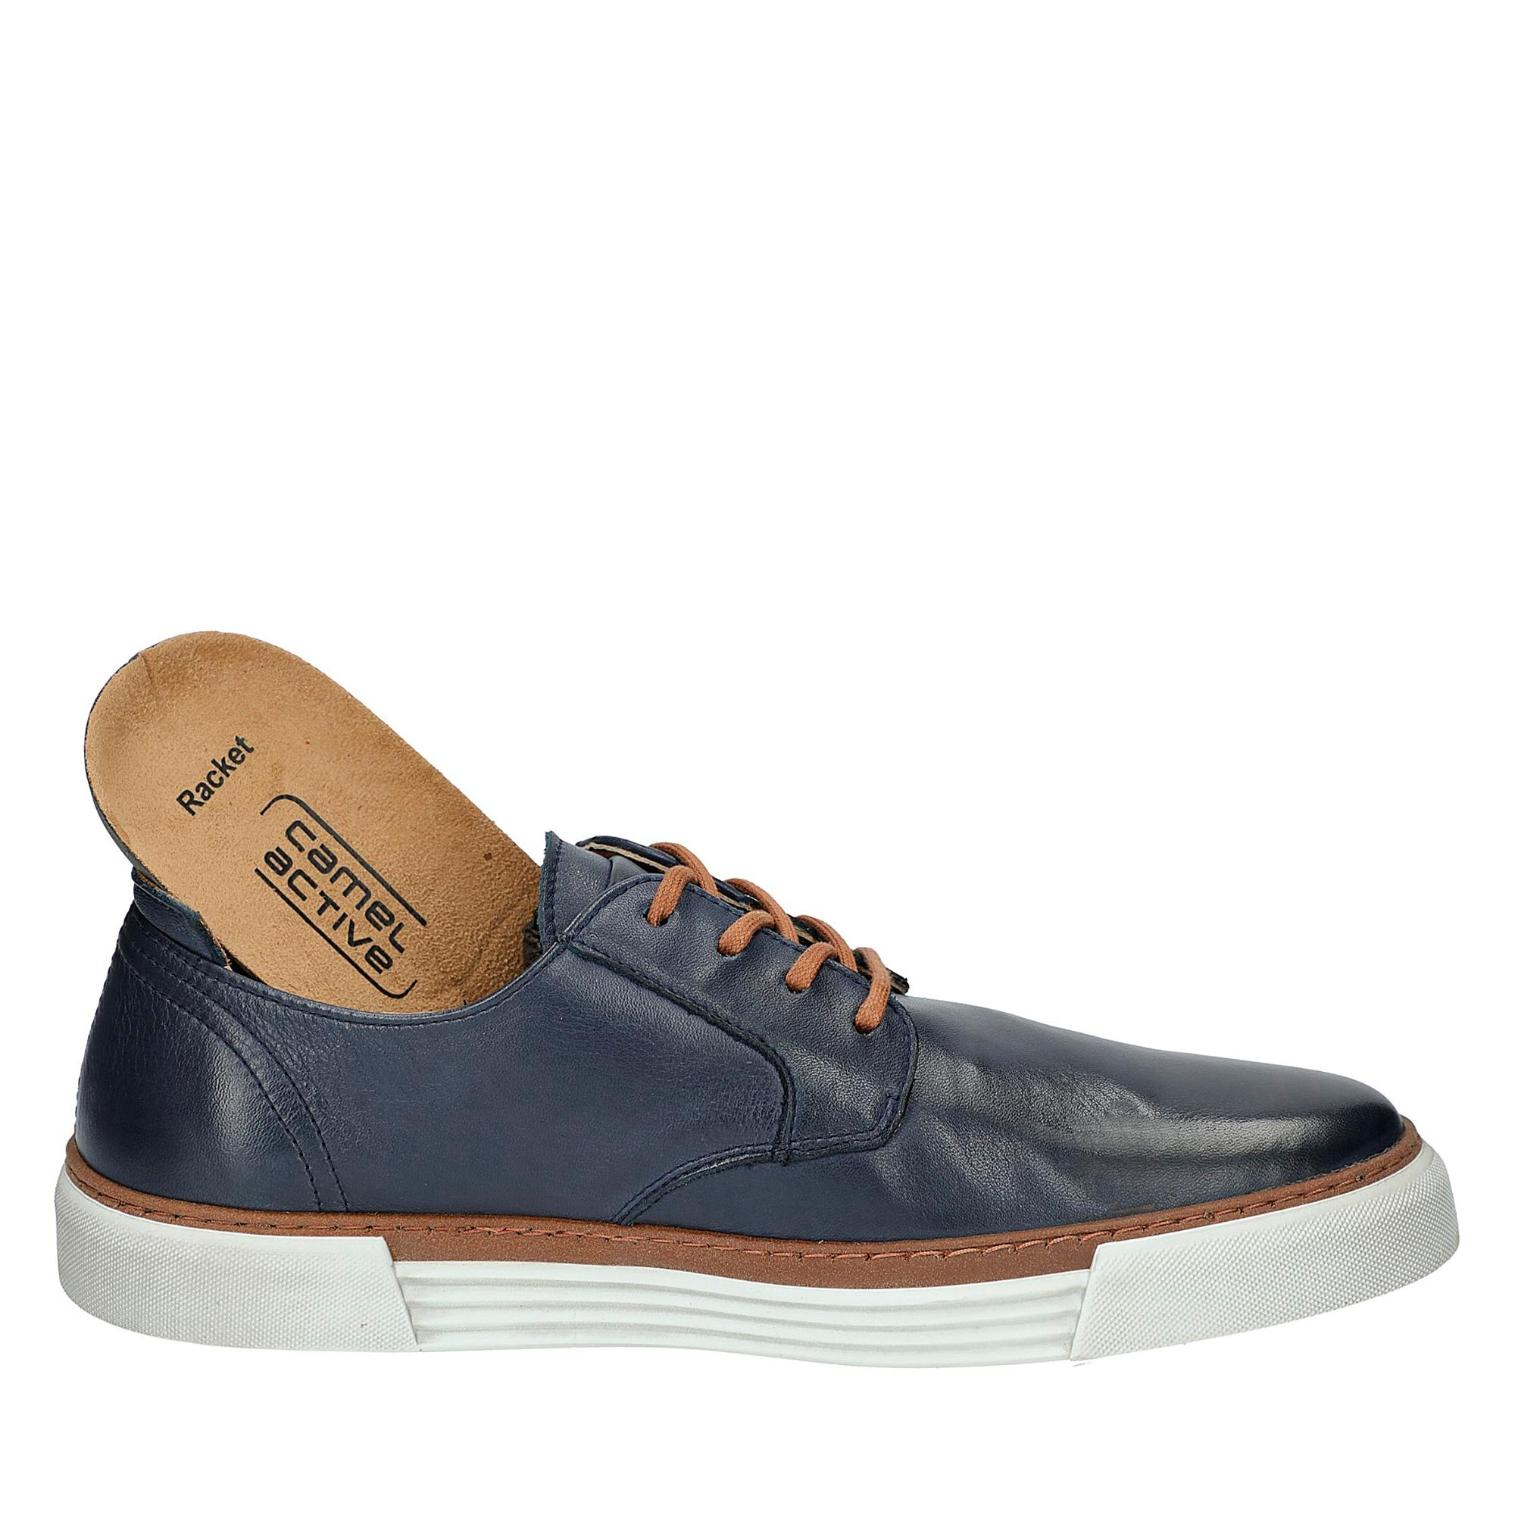 Camel active Sneaker Sneaker active in Farbe marine f22f05